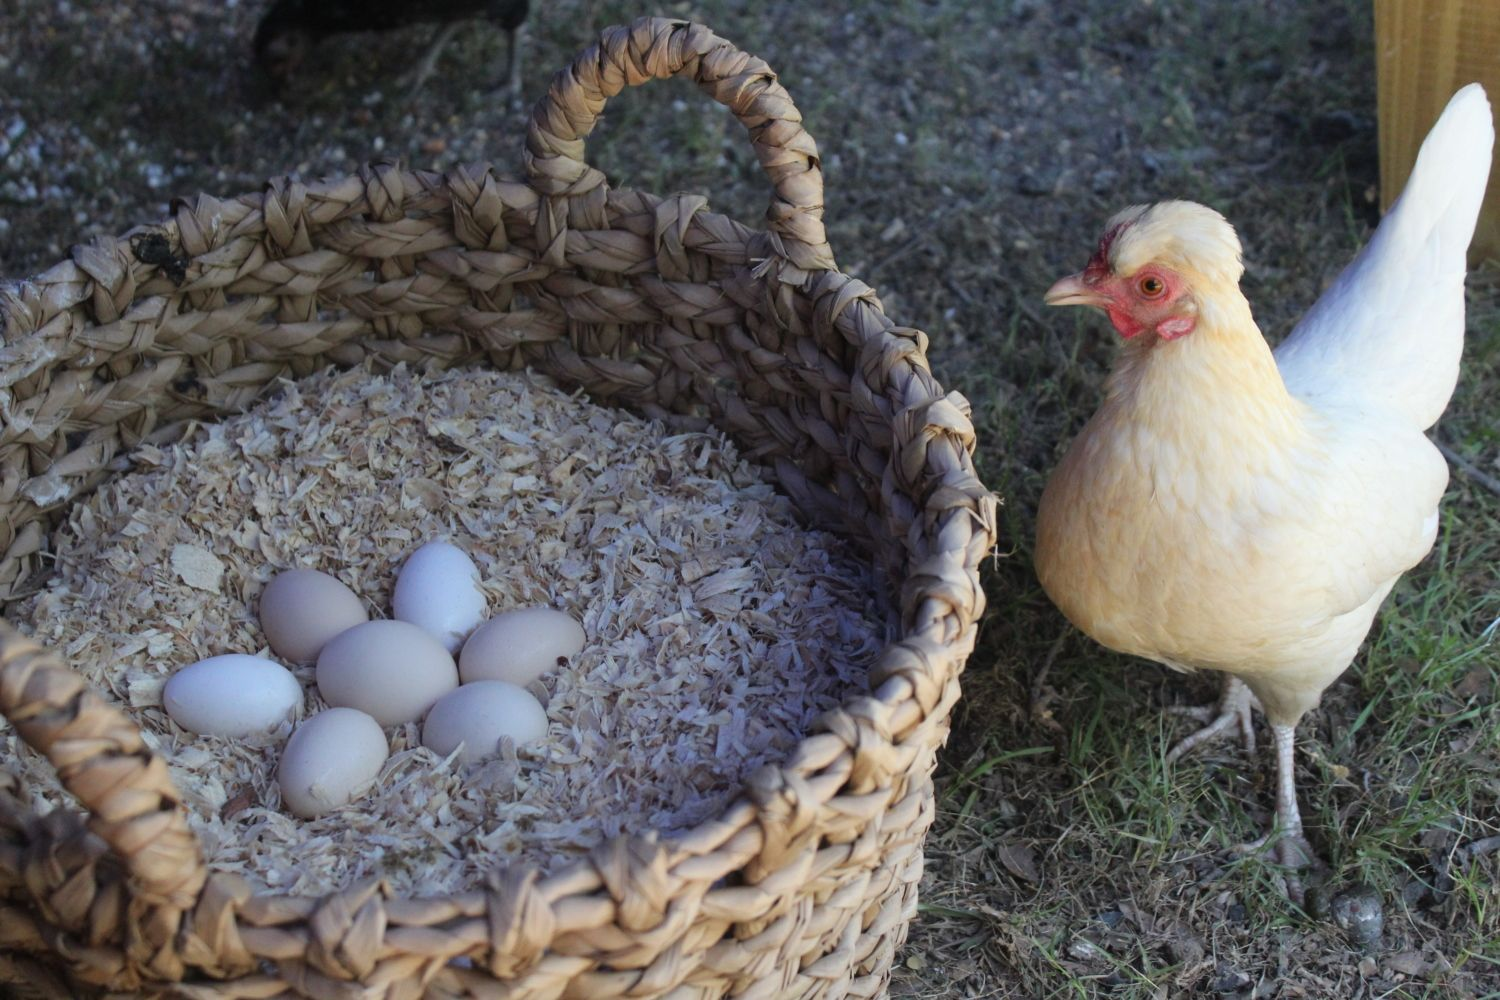 Pearl and her eggs